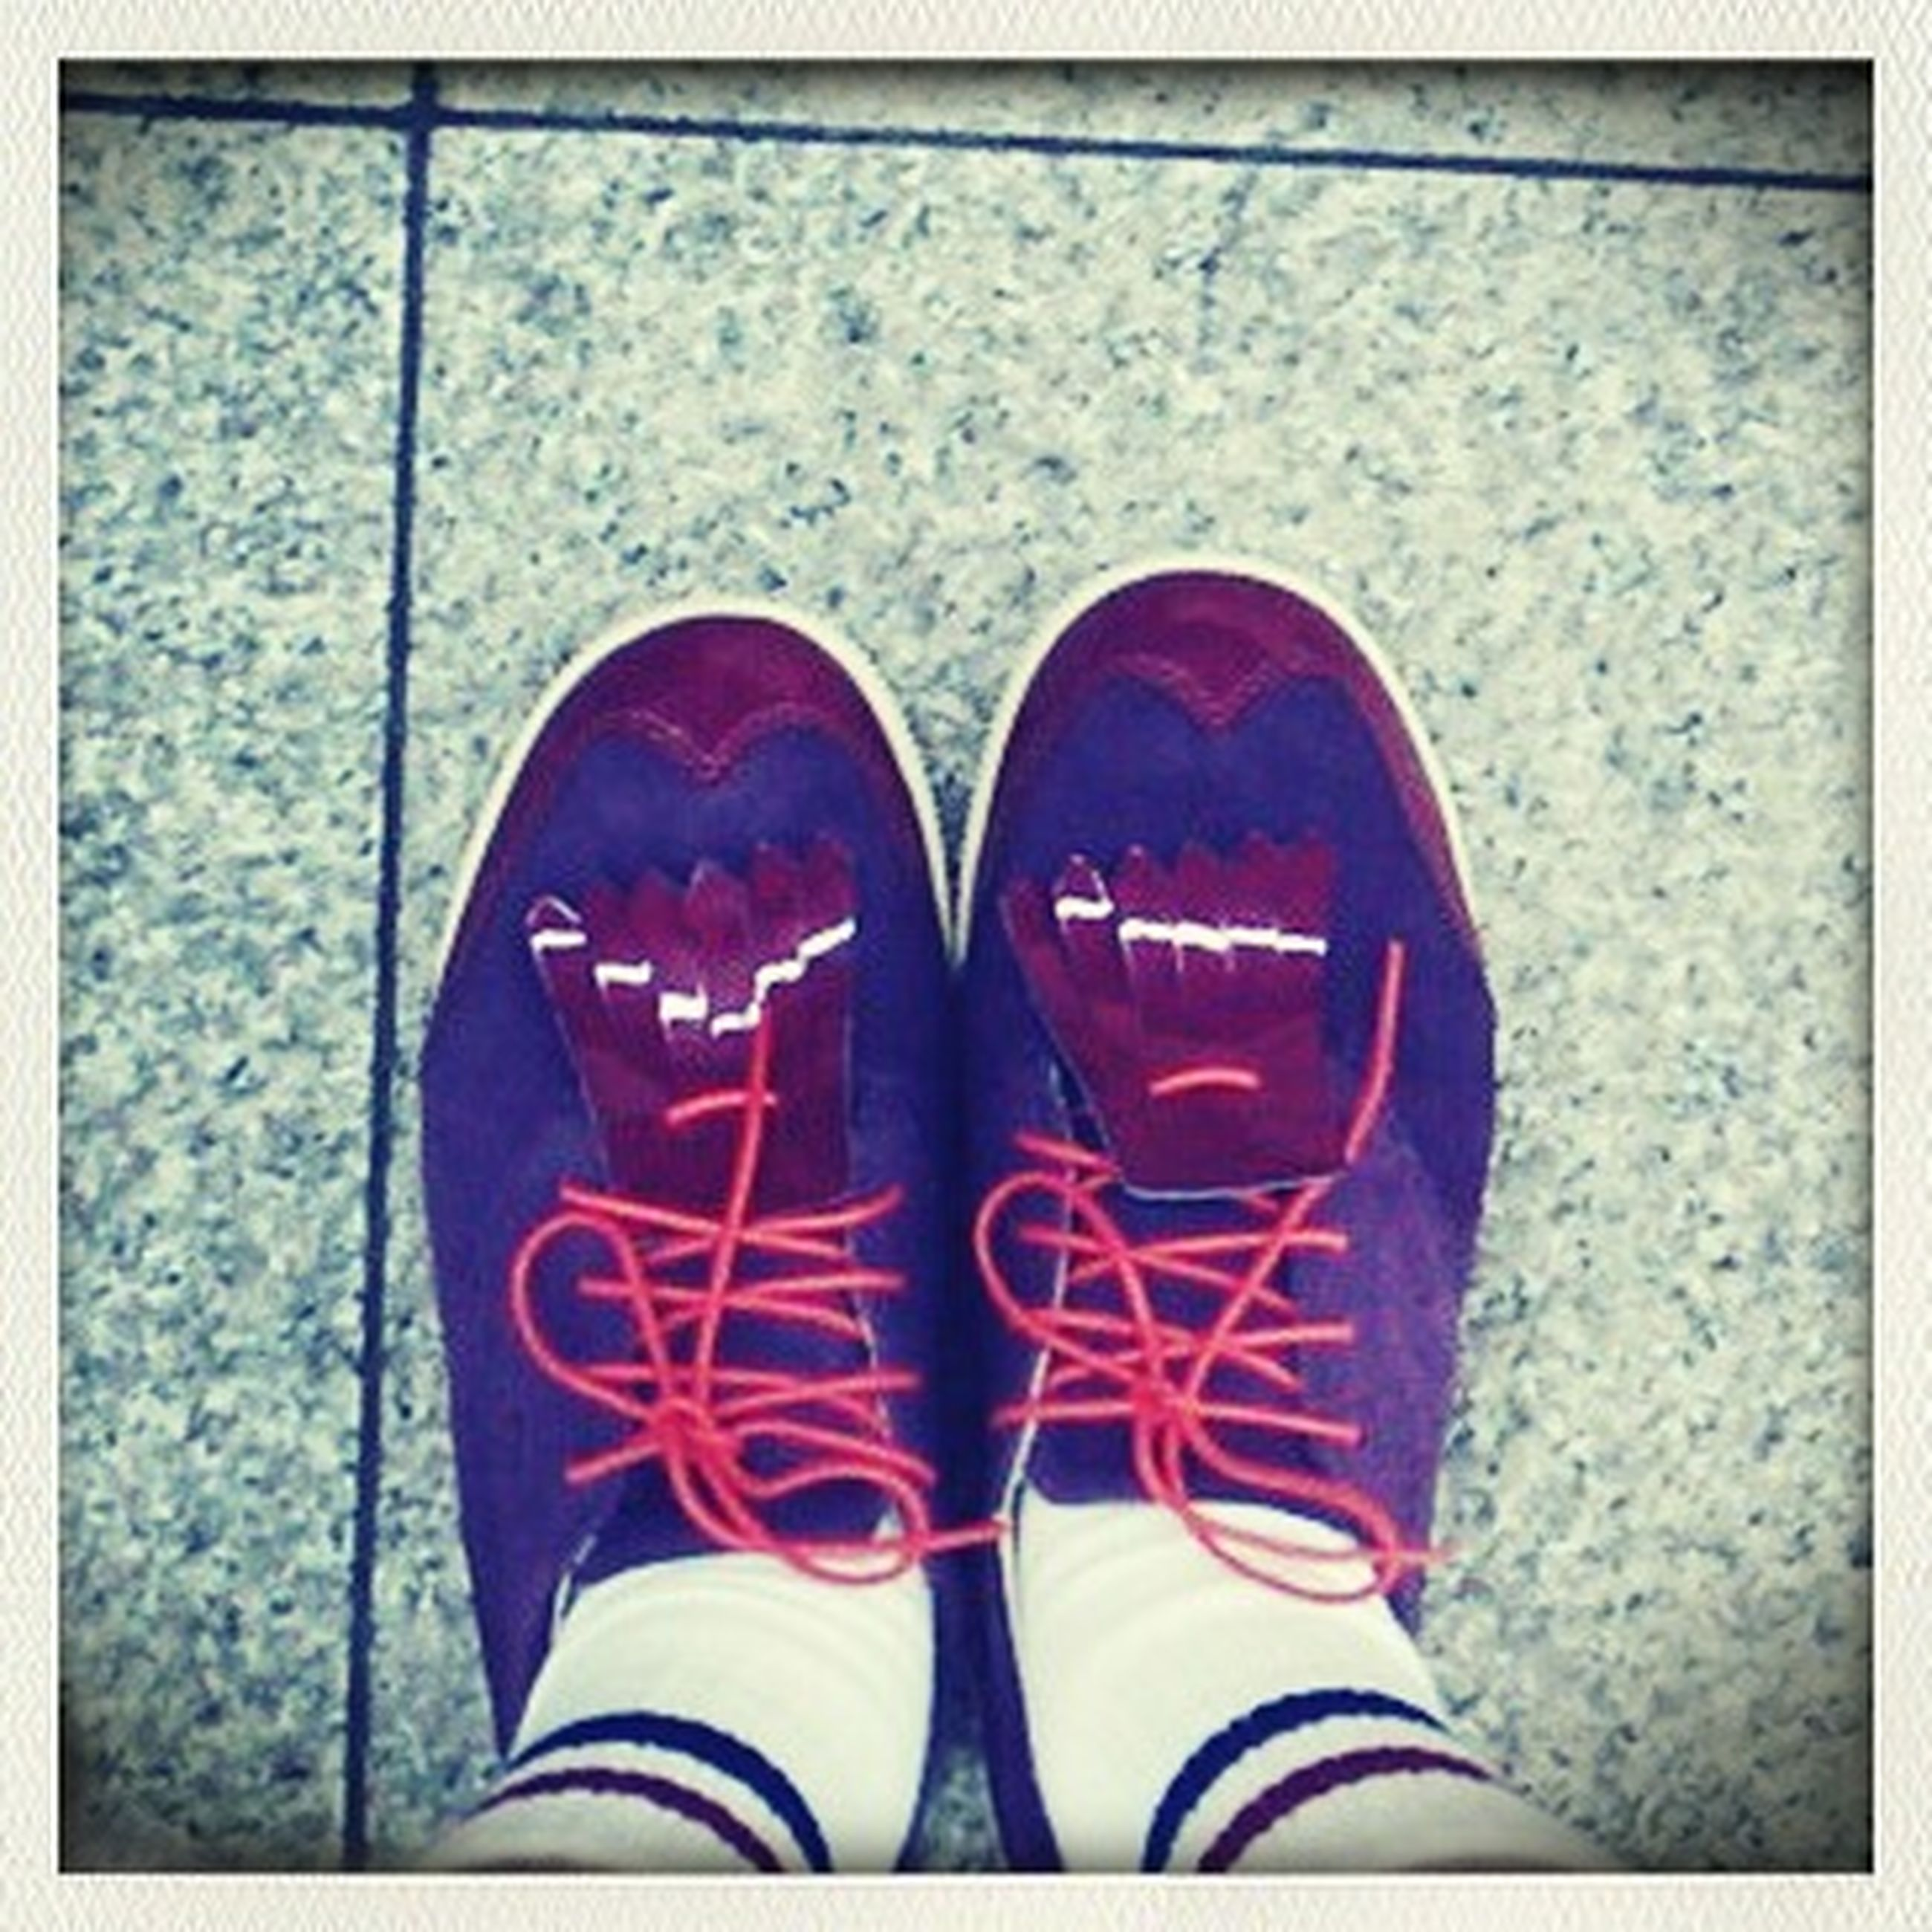 shoe, low section, person, personal perspective, footwear, standing, human foot, lifestyles, transfer print, high angle view, canvas shoe, auto post production filter, pair, men, leisure activity, jeans, street